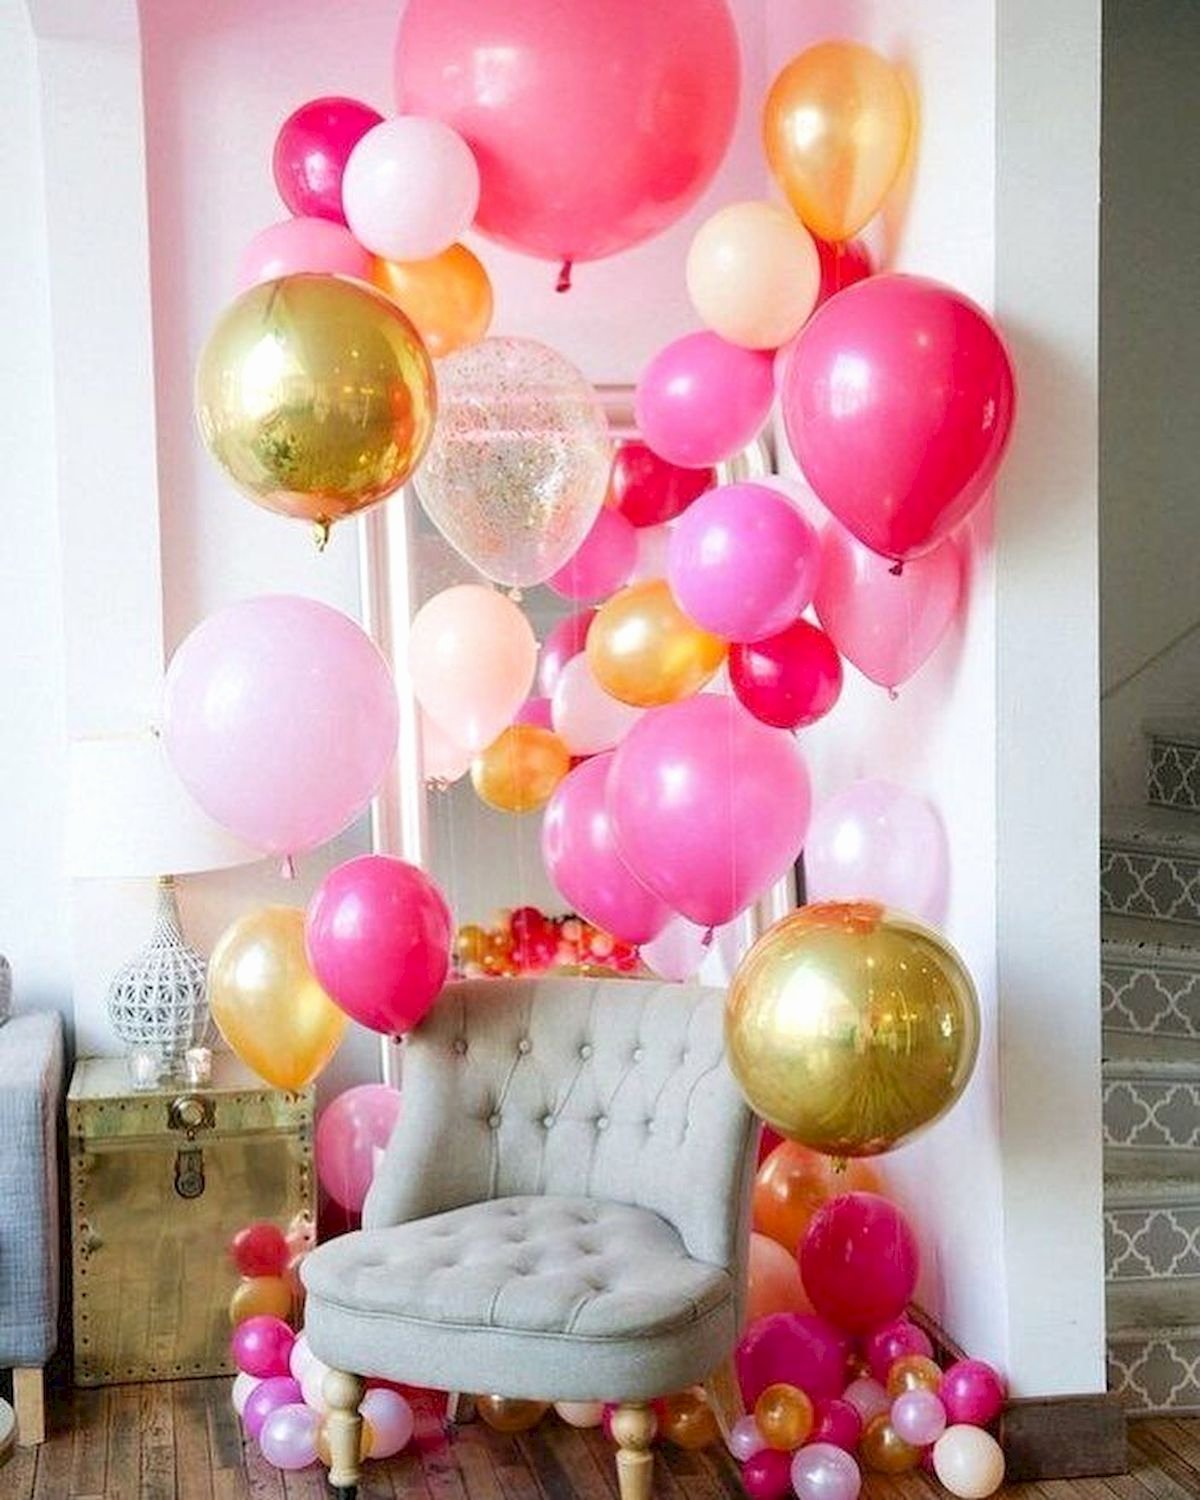 Birthday Decoration Ideas for Living Room Unique Birthday Party Decoration Ideas 21 Jihanshanum